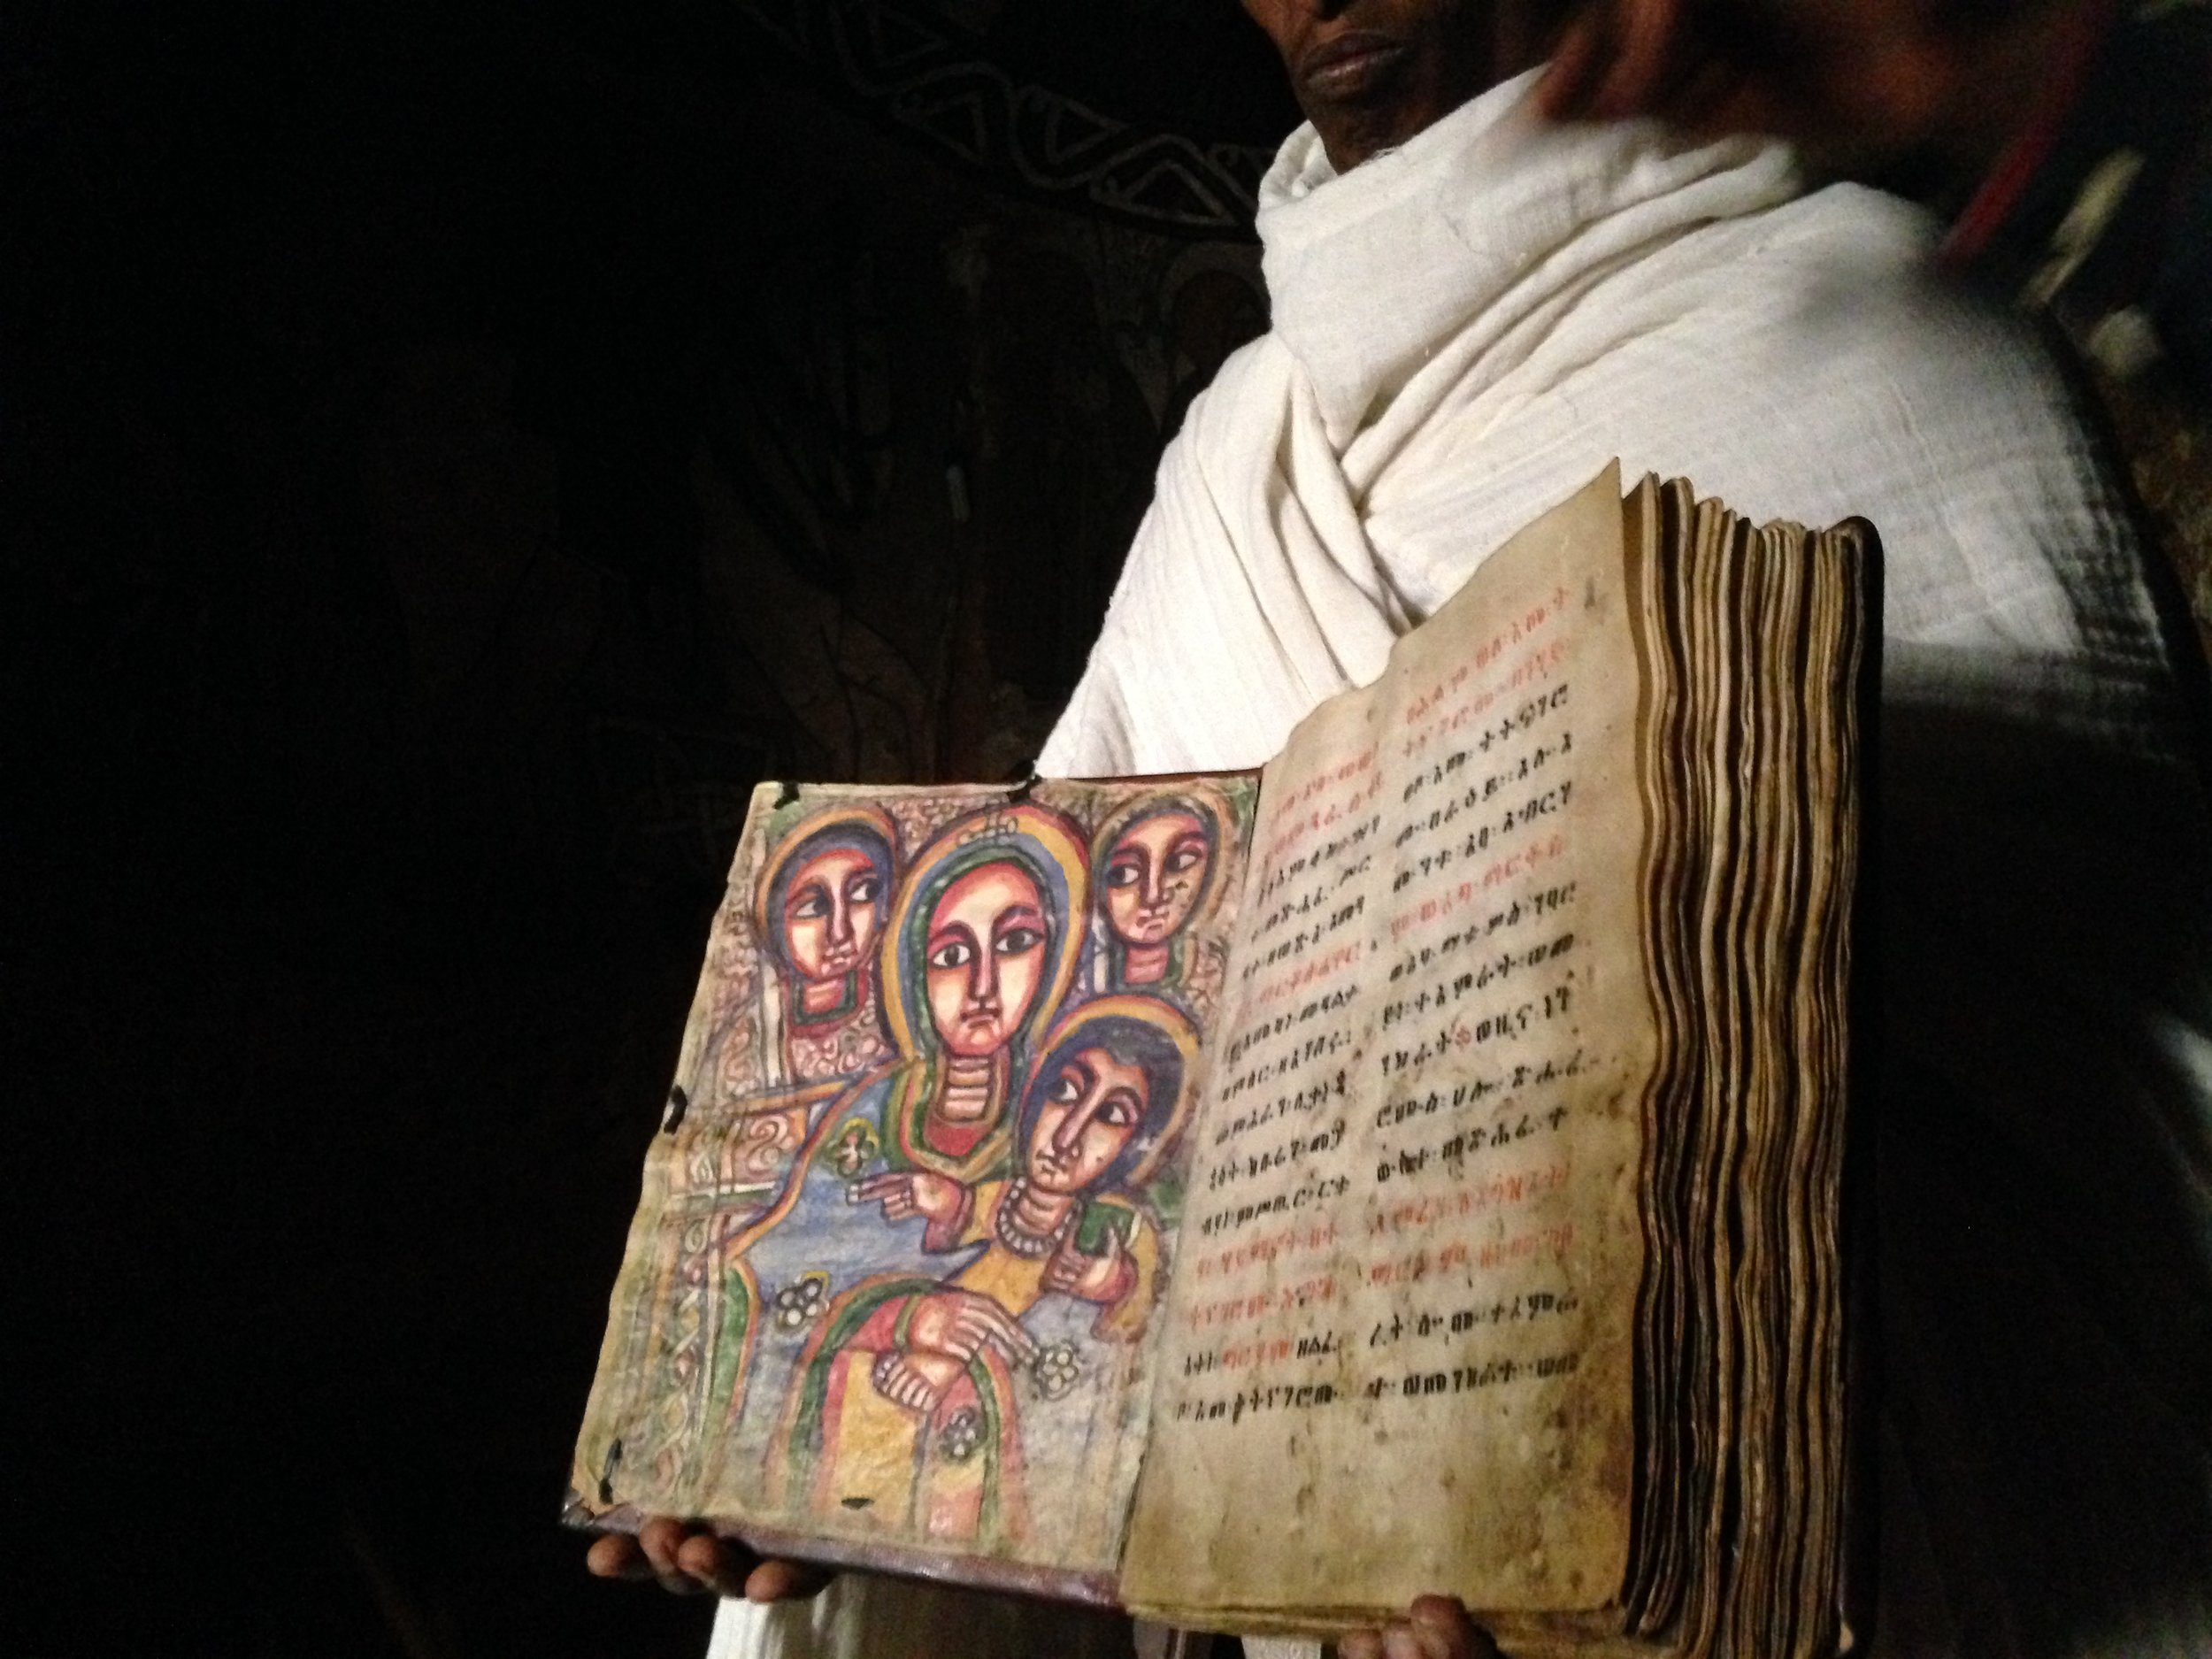 Priest showing us the ancient scriptures that are made of goatskin.